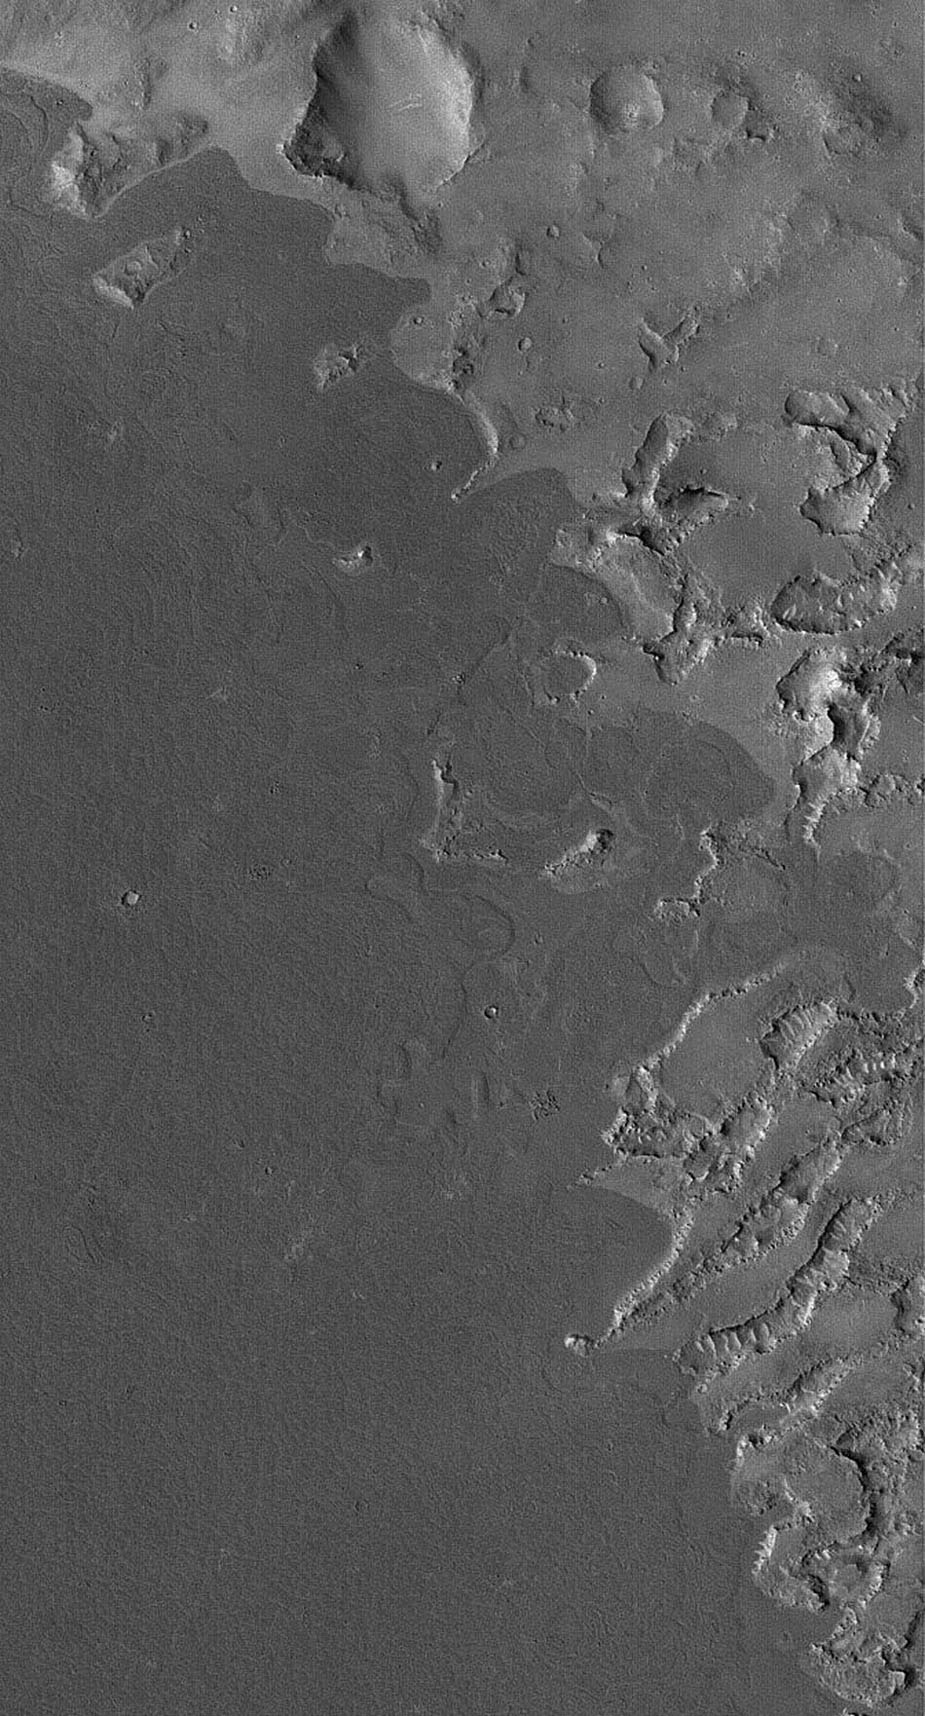 This image from NASA's Mars Global Surveyor shows dark lava flows that have embayed -- flowed up against and into -- higher, more rugged terrain in the Cyclopia/Aethiopis region of Mars (southwest of Cerberus).